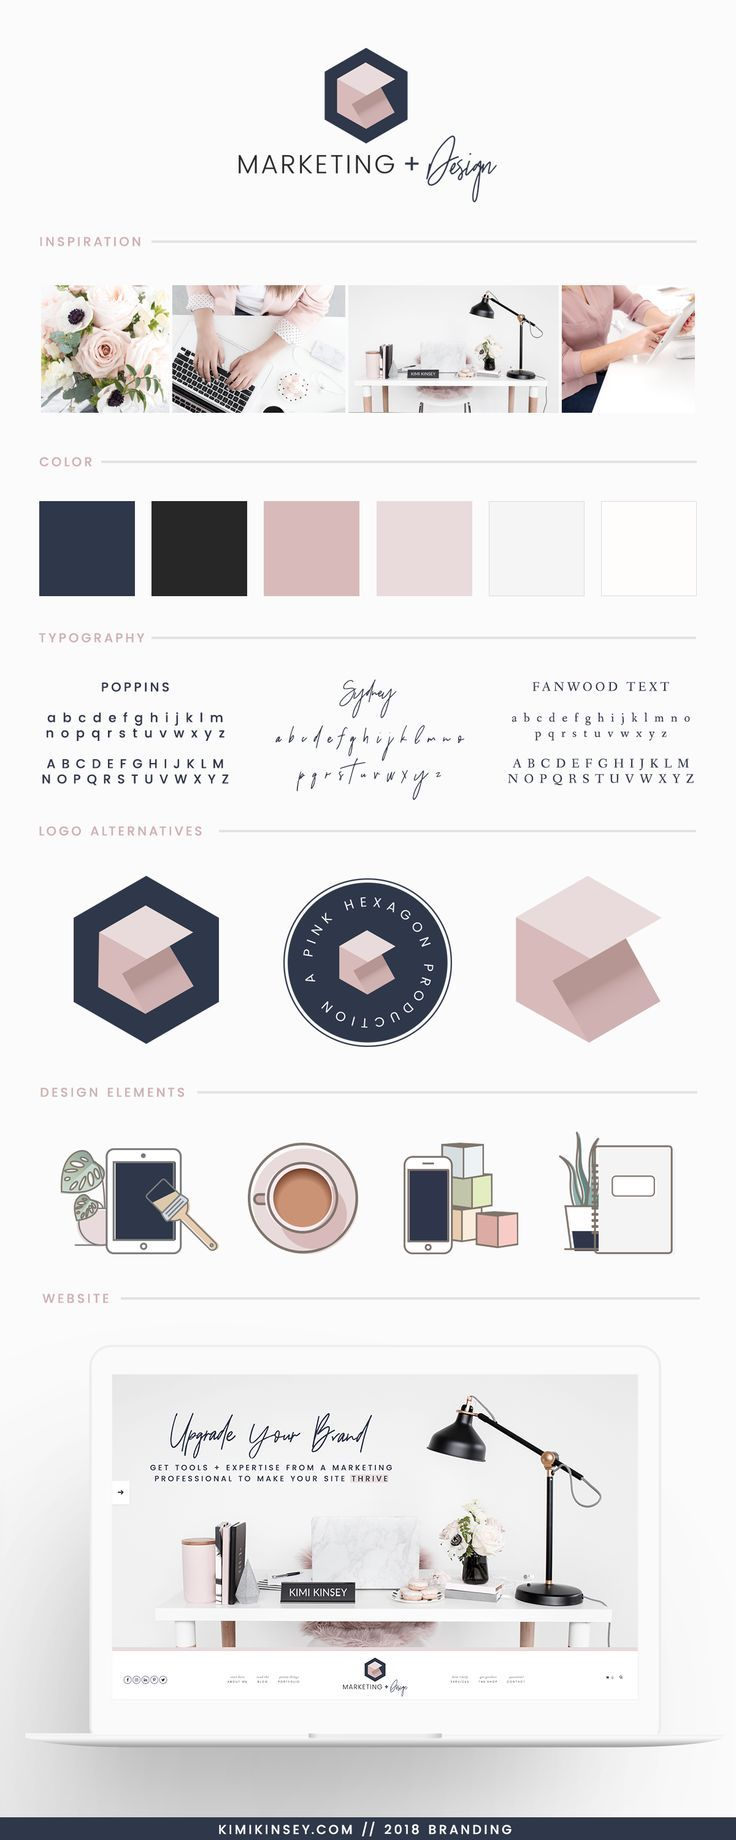 Kimi Kinsey Marketing and Design Brand Board 2018 - Inspiration, Color Palette, Typography choices, branding and design elements for the Kimi Kinsey rebrand. #brandboard #branding